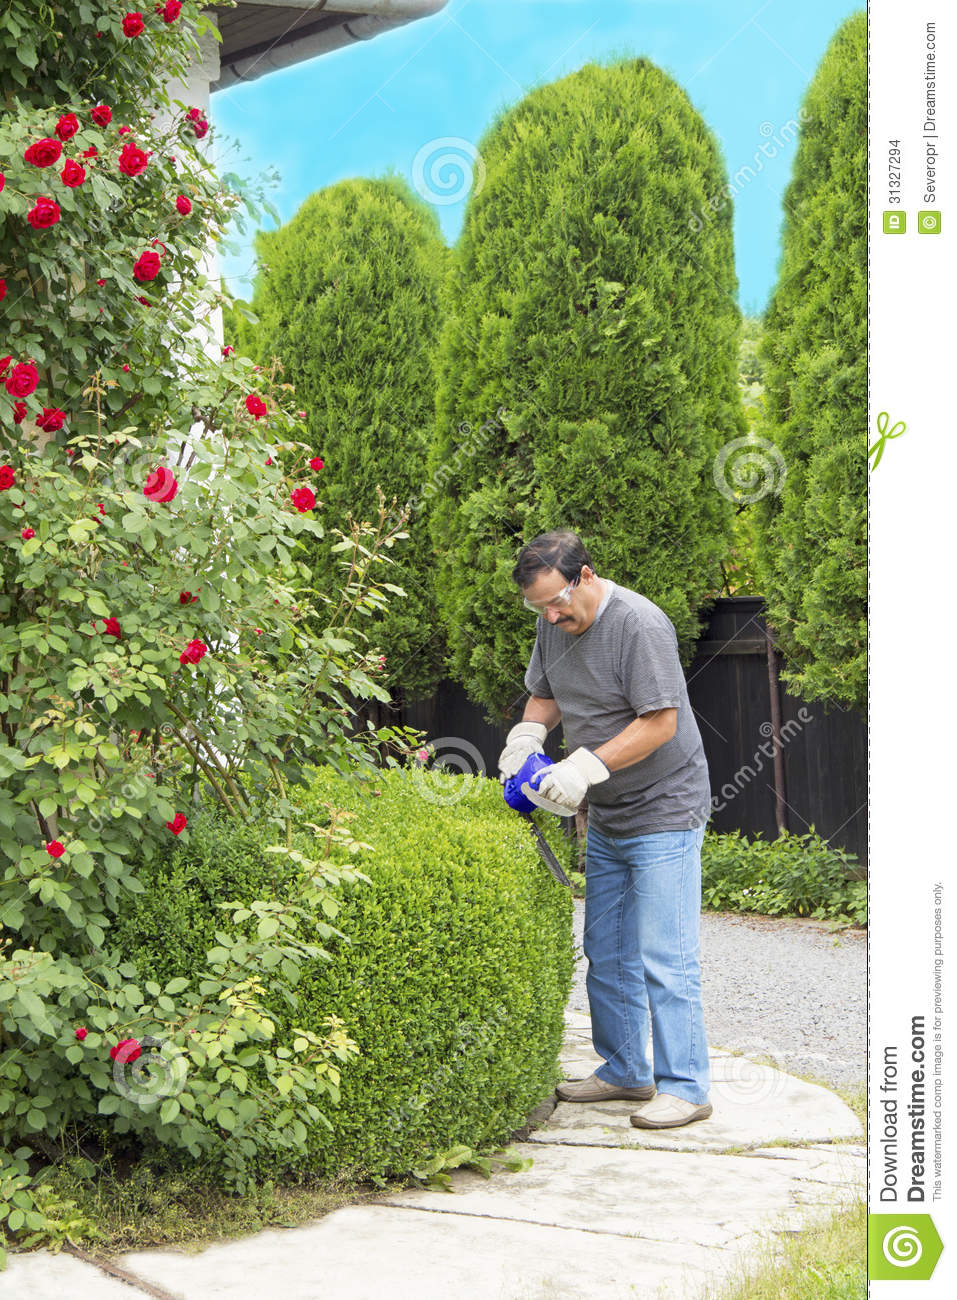 man cutting bushes in the garden stock photo image 31327294. Black Bedroom Furniture Sets. Home Design Ideas